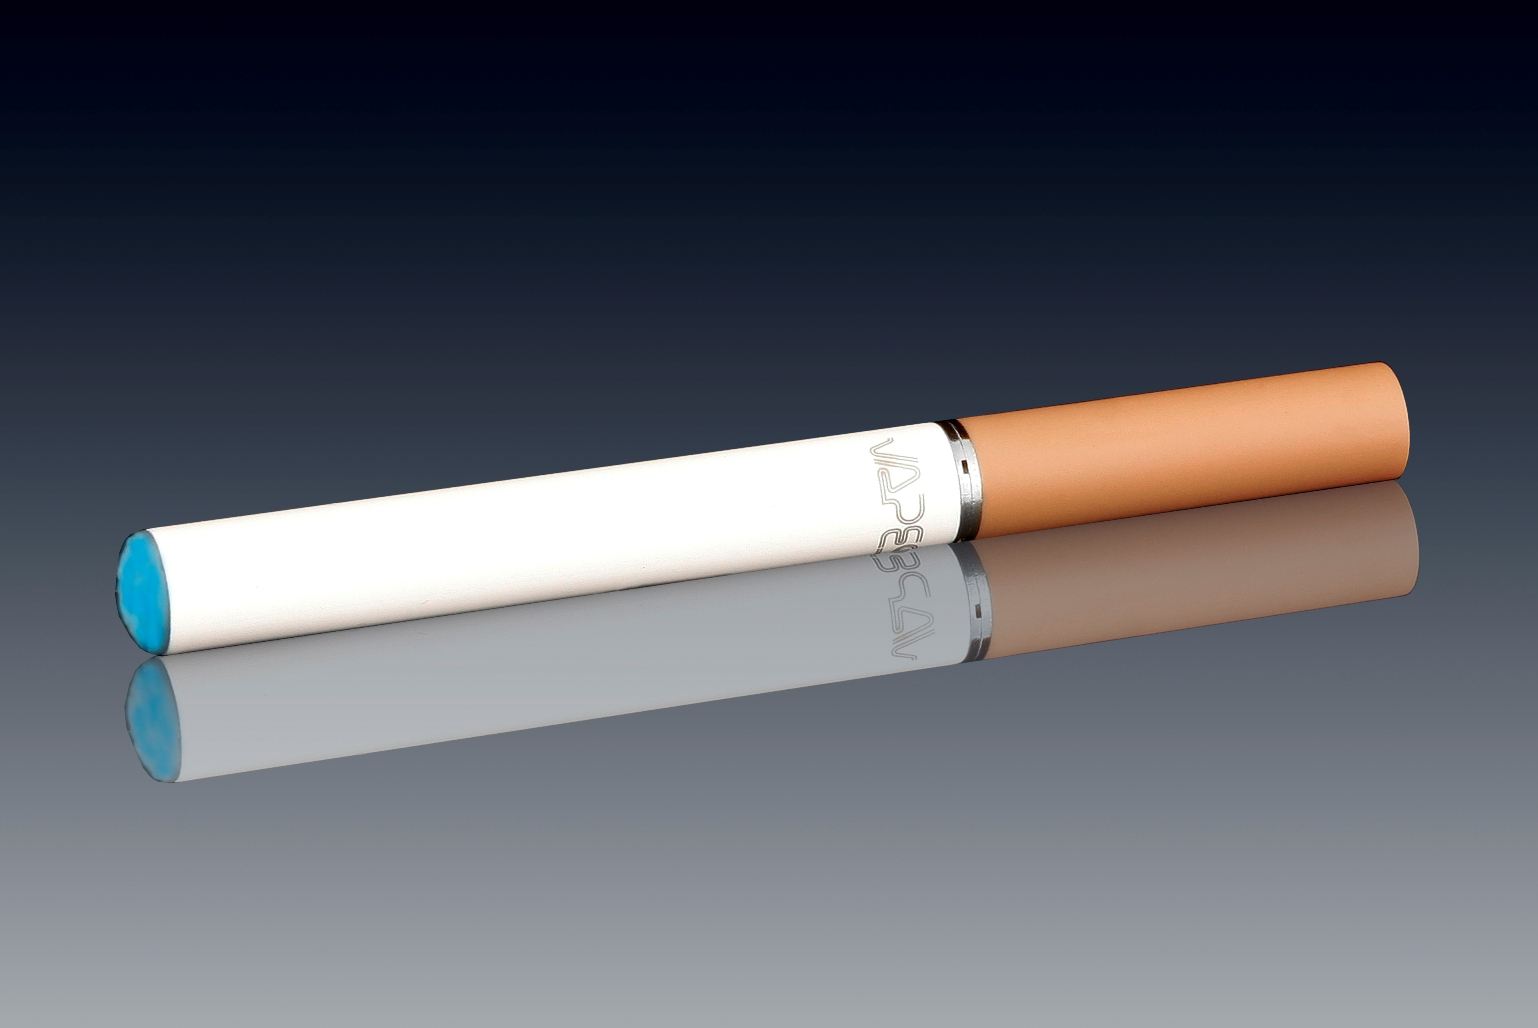 Disposable Electronic Cigarettes vs. E-Cigarette Starter Kits